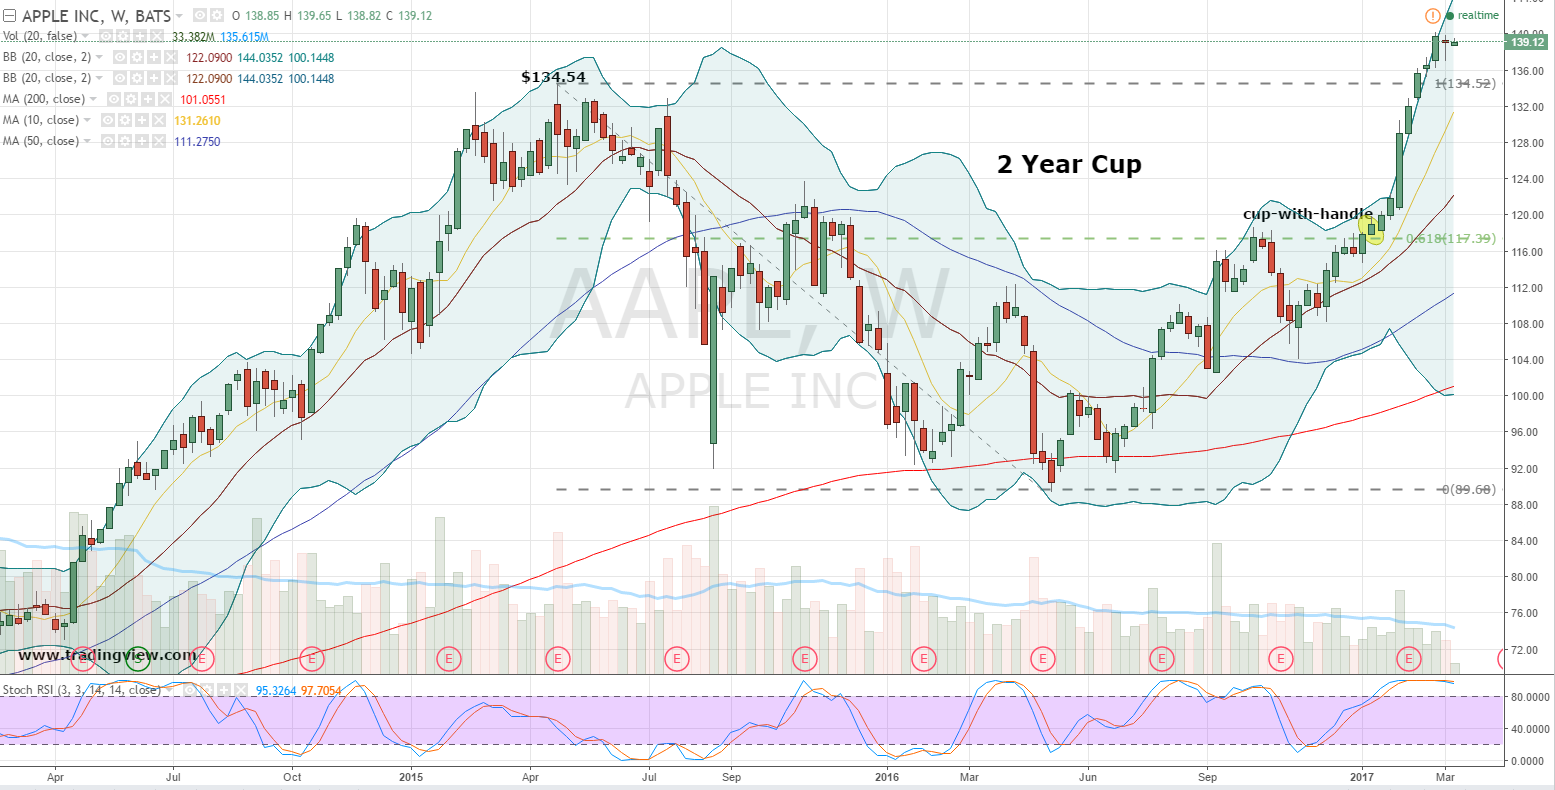 aapl apple rbc inc chart weekly sorry short candlestick handle cup investorplace enlarge overbought trumps doji complete without inside right